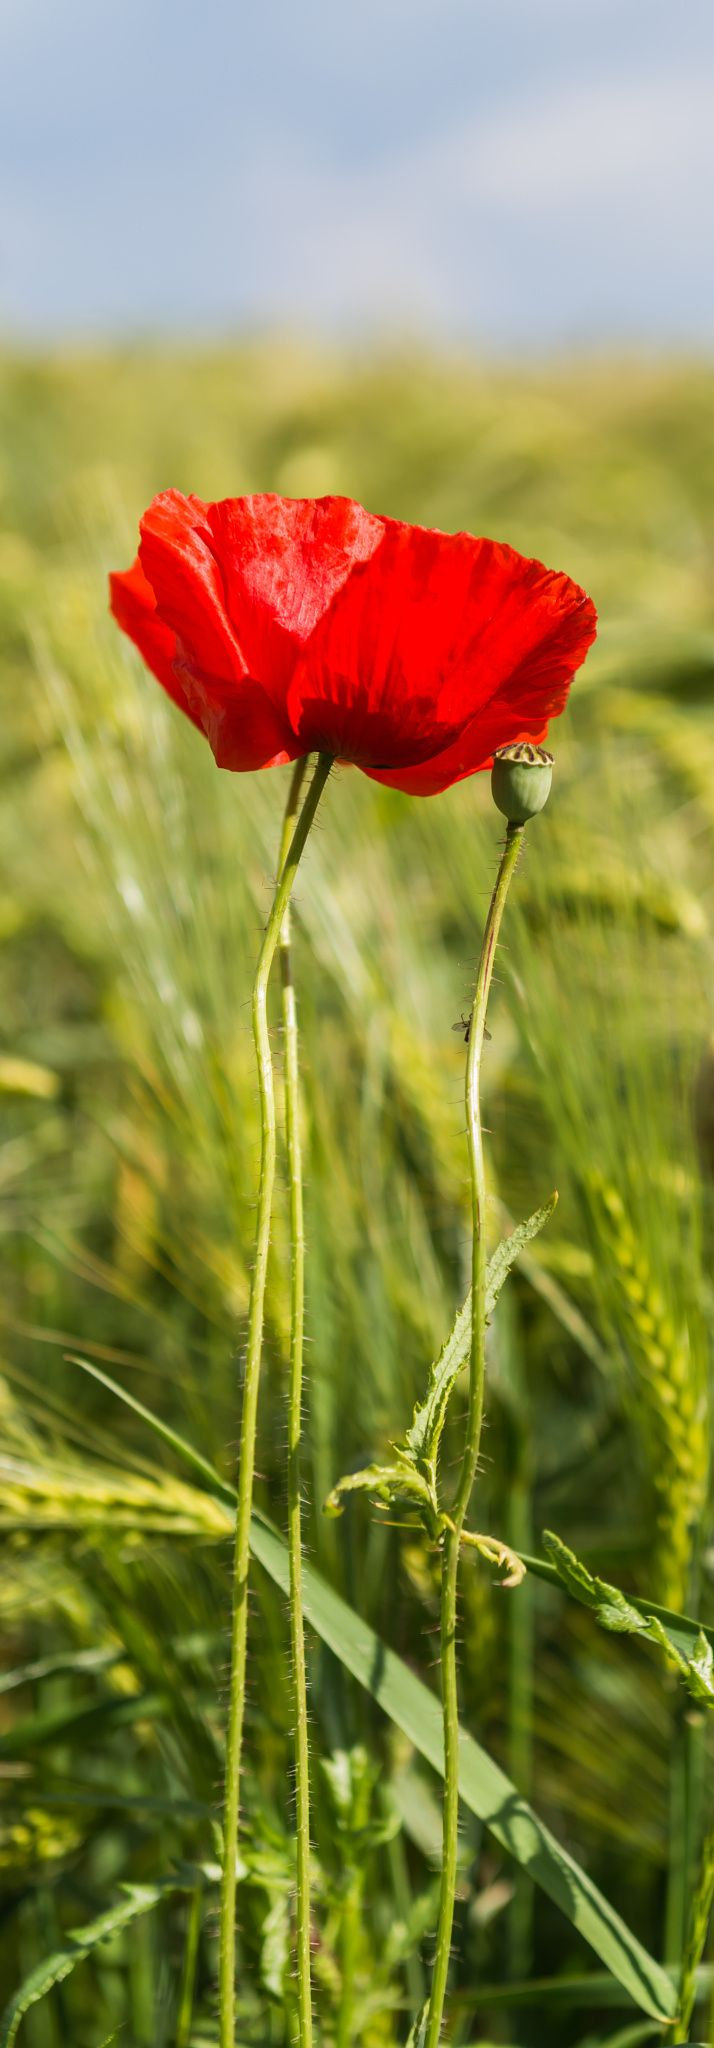 1188 best Poppies images on Pinterest | Poppies, Beautiful flowers ...